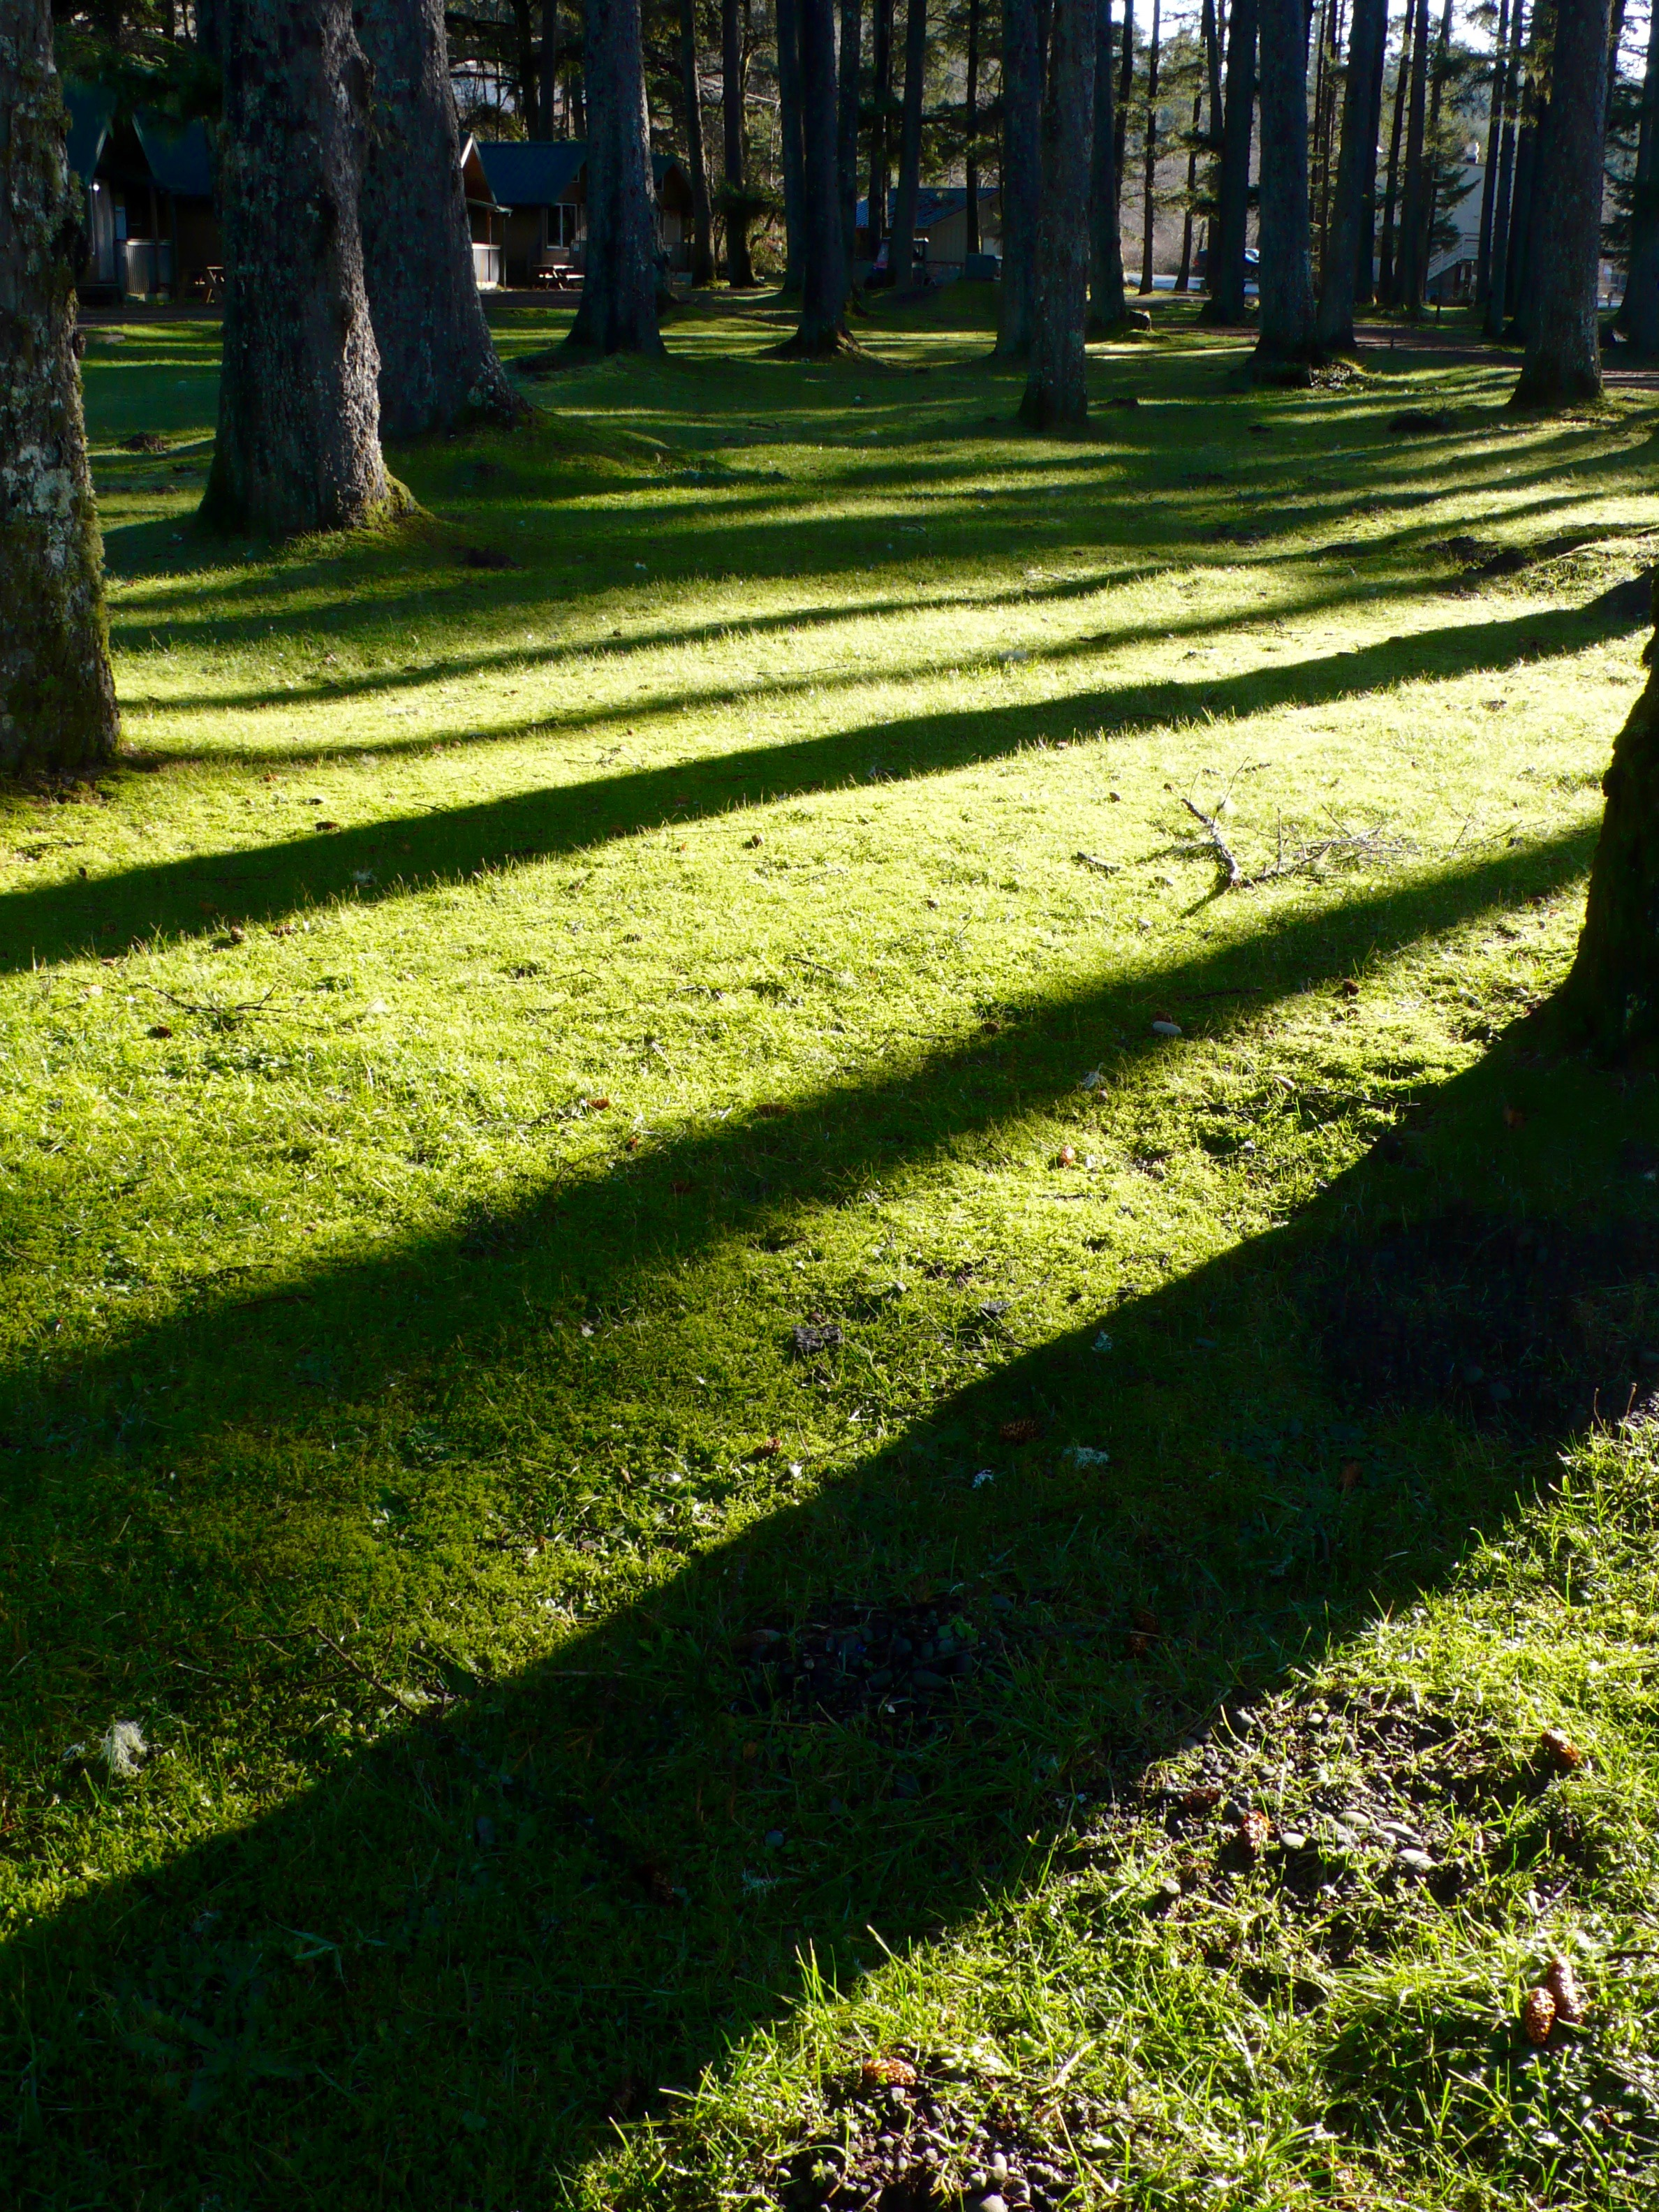 Long Shadows Across Grass (color untouched, just as I saw it!)